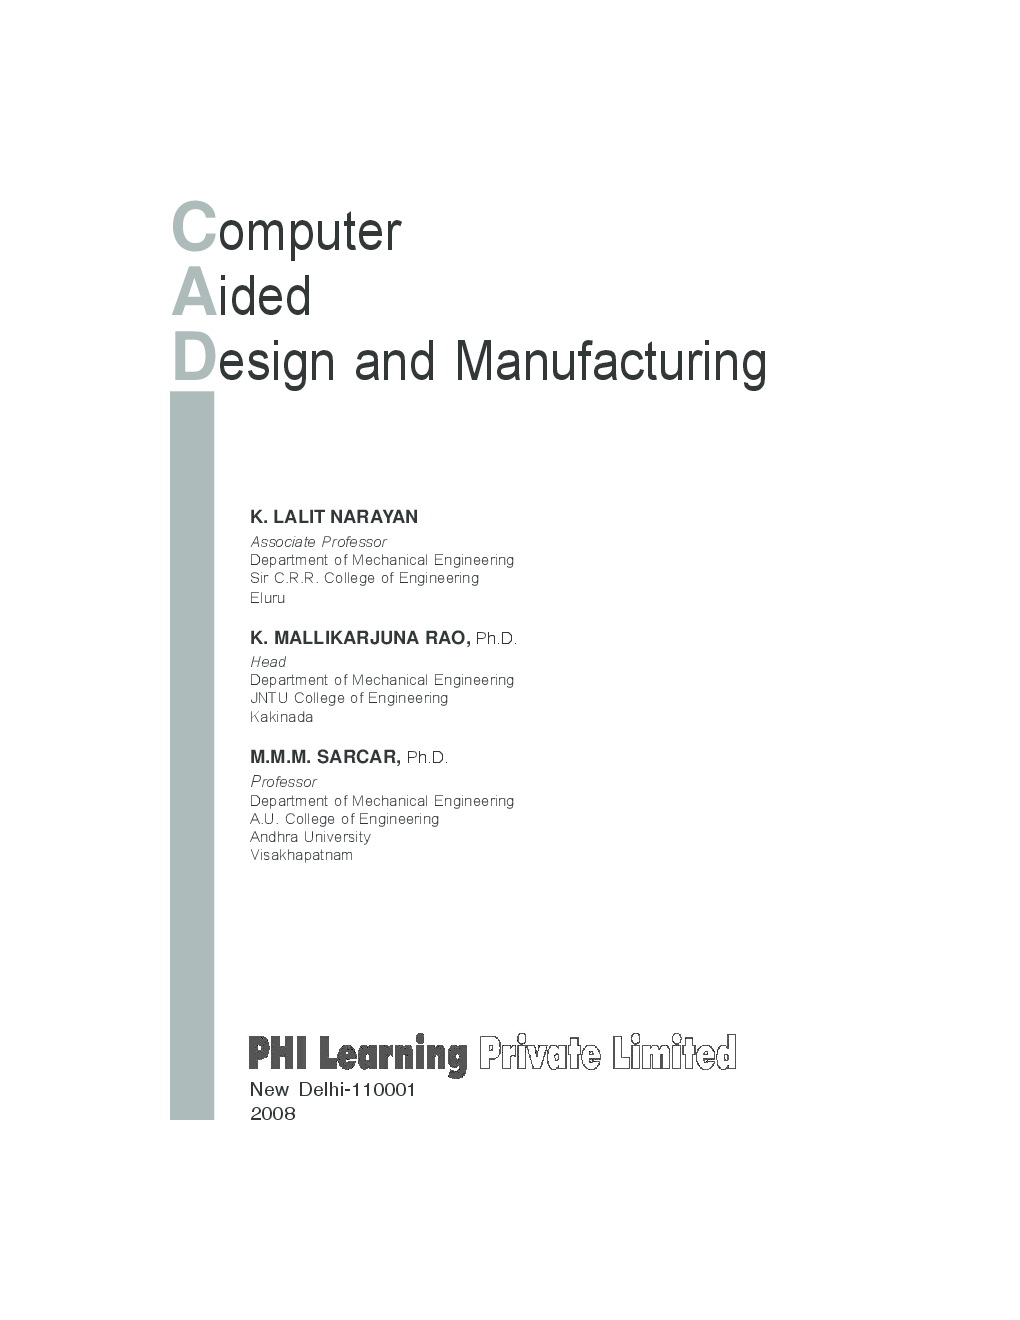 Computer Aided Design And Manufacturing (PHI) - Page 4